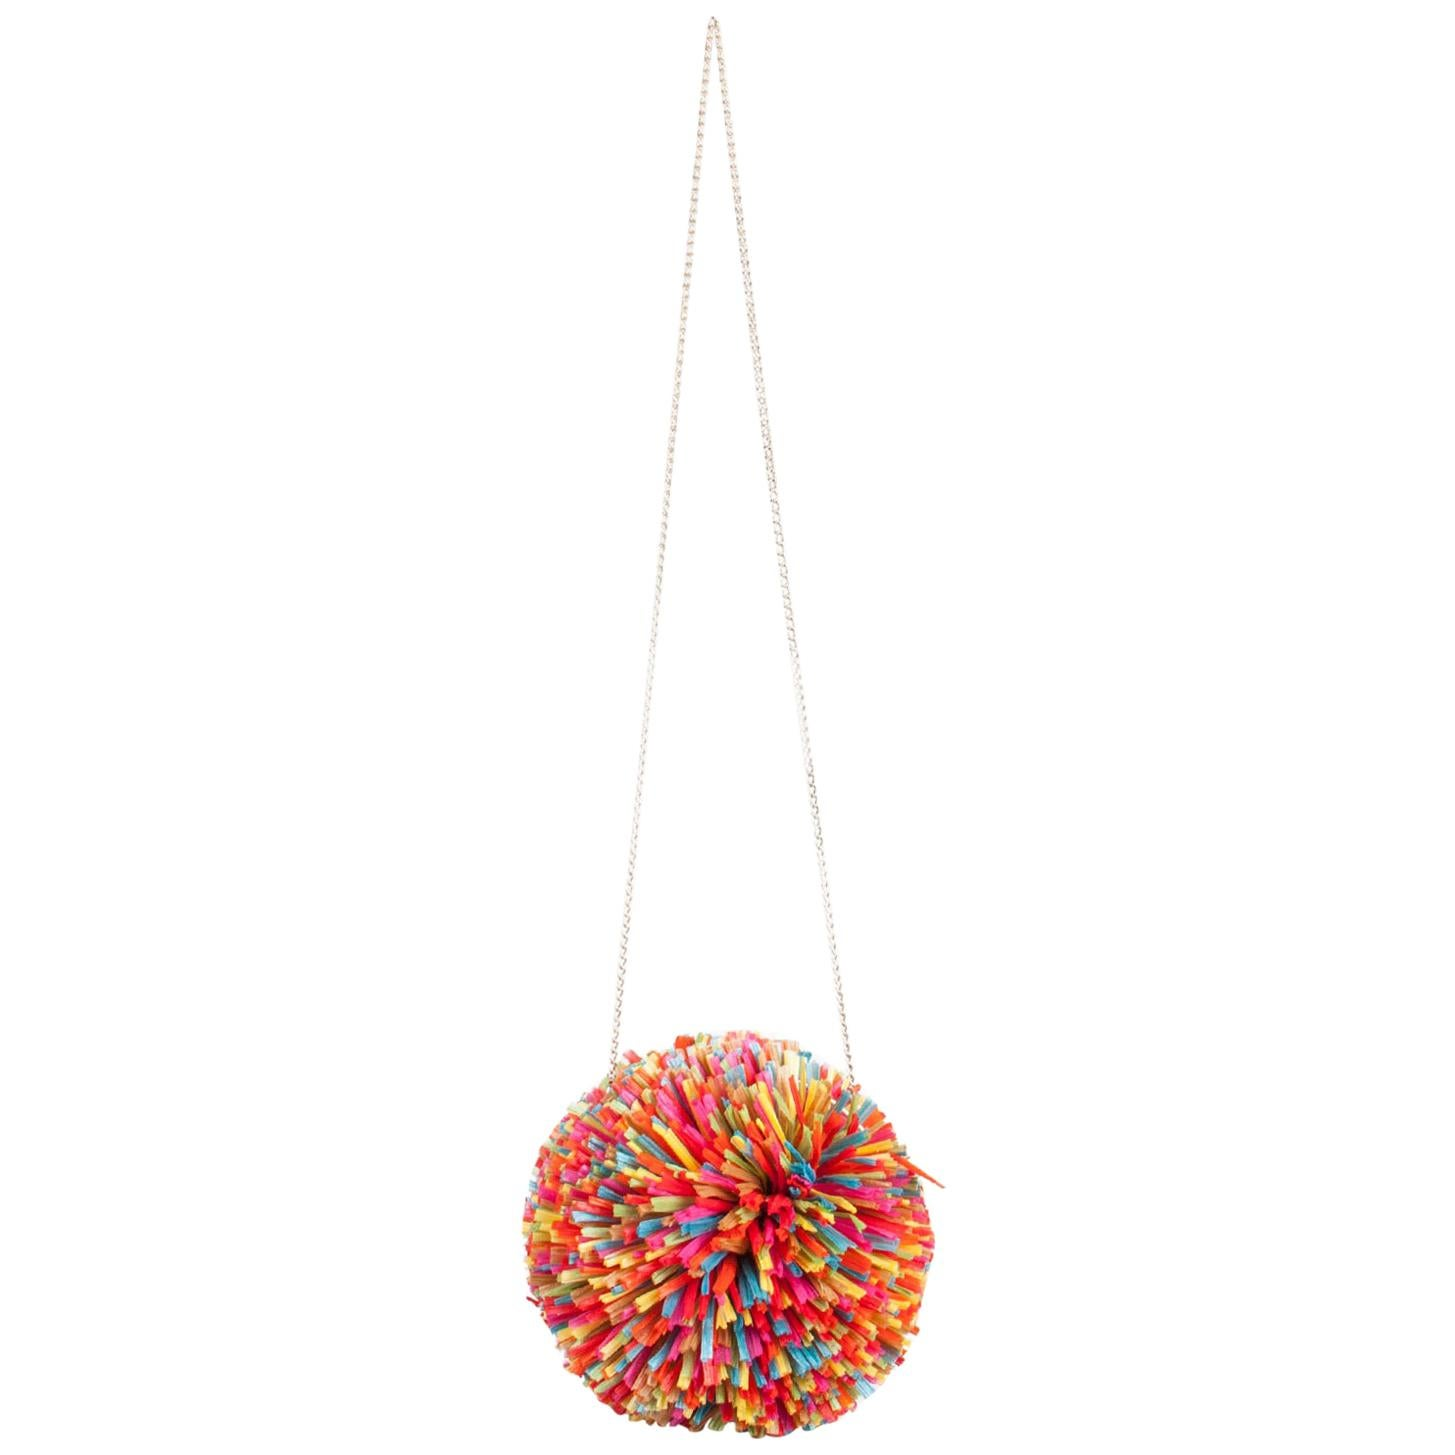 Charlotte Olympia Multicolor Straw and Suede Fiesta Chain Clutch Bag